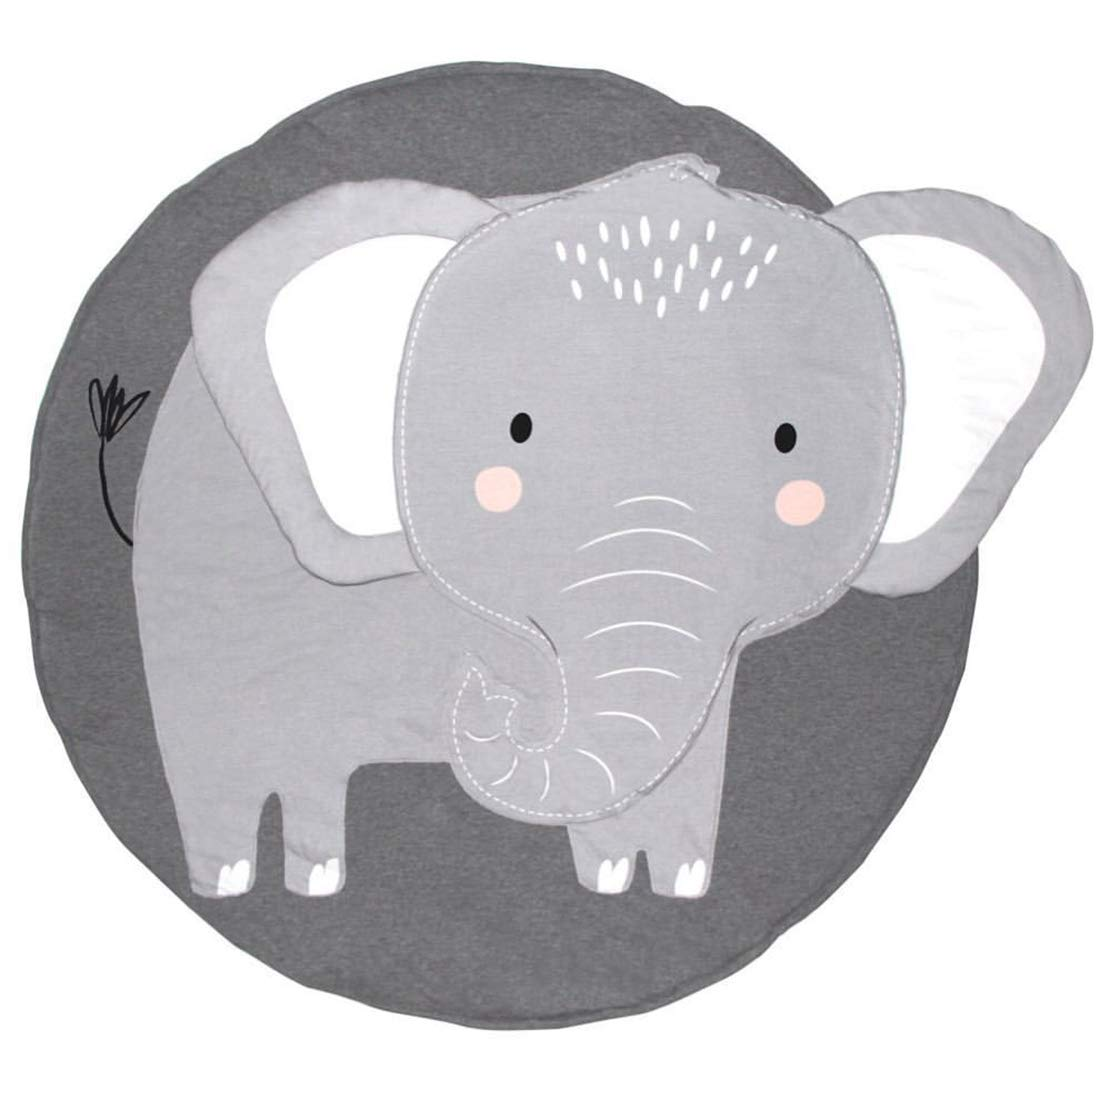 Jialisen Baby Playmats Round Cotton Nursery Rug Baby Crawling Mat Game Blanket Animals Mats Soft Carpet Kids Rug for Kids Room Home Decoration 35.5 x35.5 Inches (Elephant)